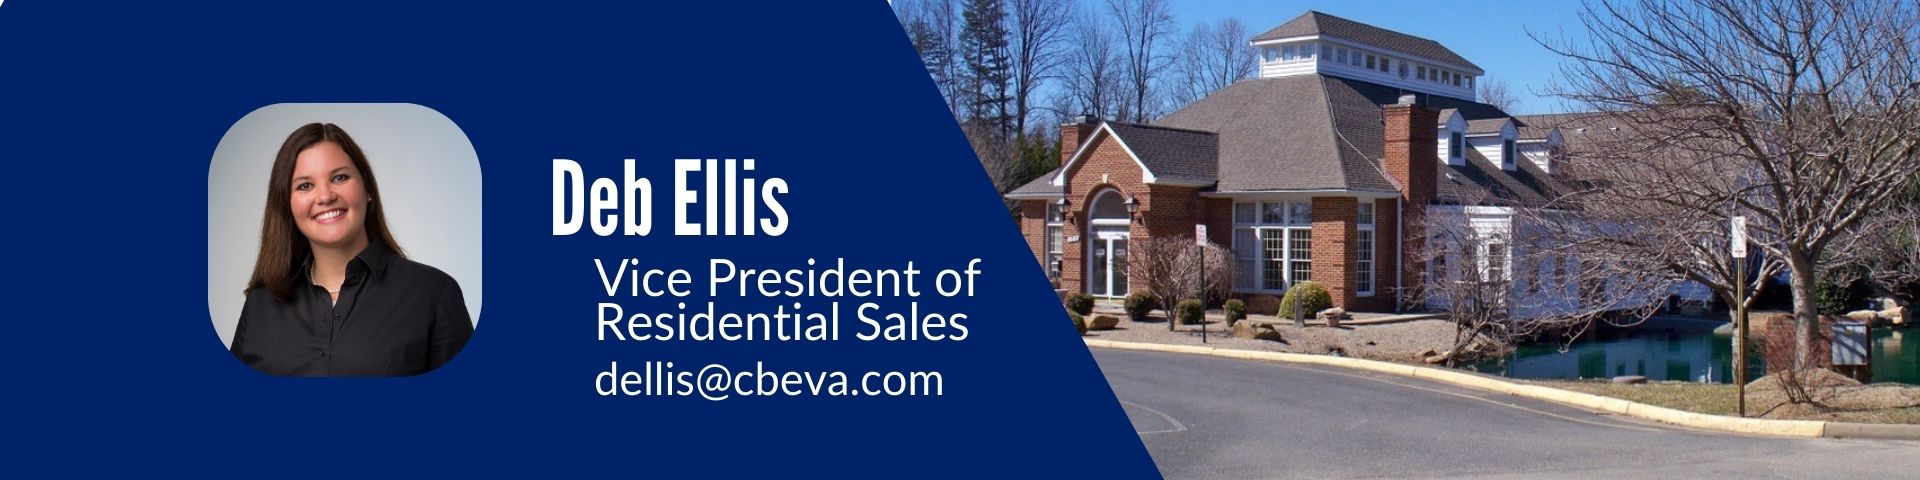 Deb Ellis Vice President of Residential Sales and  Managing Broker of Coldwell Bank Elite's Staffor office.